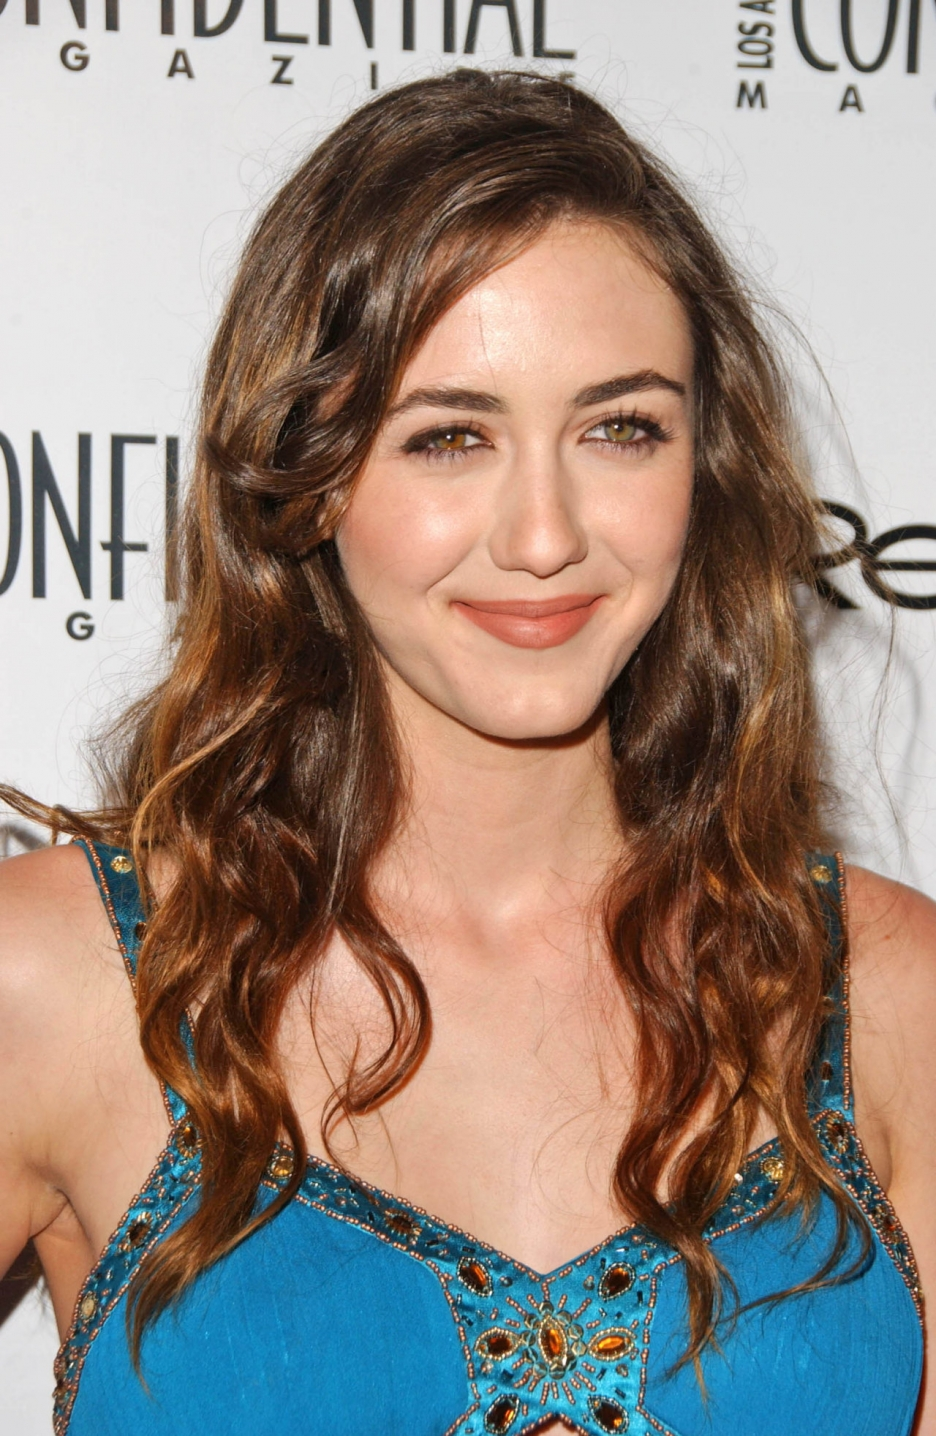 madeline zima фотоmadeline zima 2015, madeline zima weight, madeline zima listal, madeline zima 2017, madeline zima facebook, madeline zima foto, madeline zima фото, madeline zima инстаграм, madeline zima wikipedia, madeline zima, madeline zima instagram, madeline zima wiki, madeline zima vampire diaries, madeline zima the nanny, madeline zima imdb, madeline zima net worth, madeline zima heroes